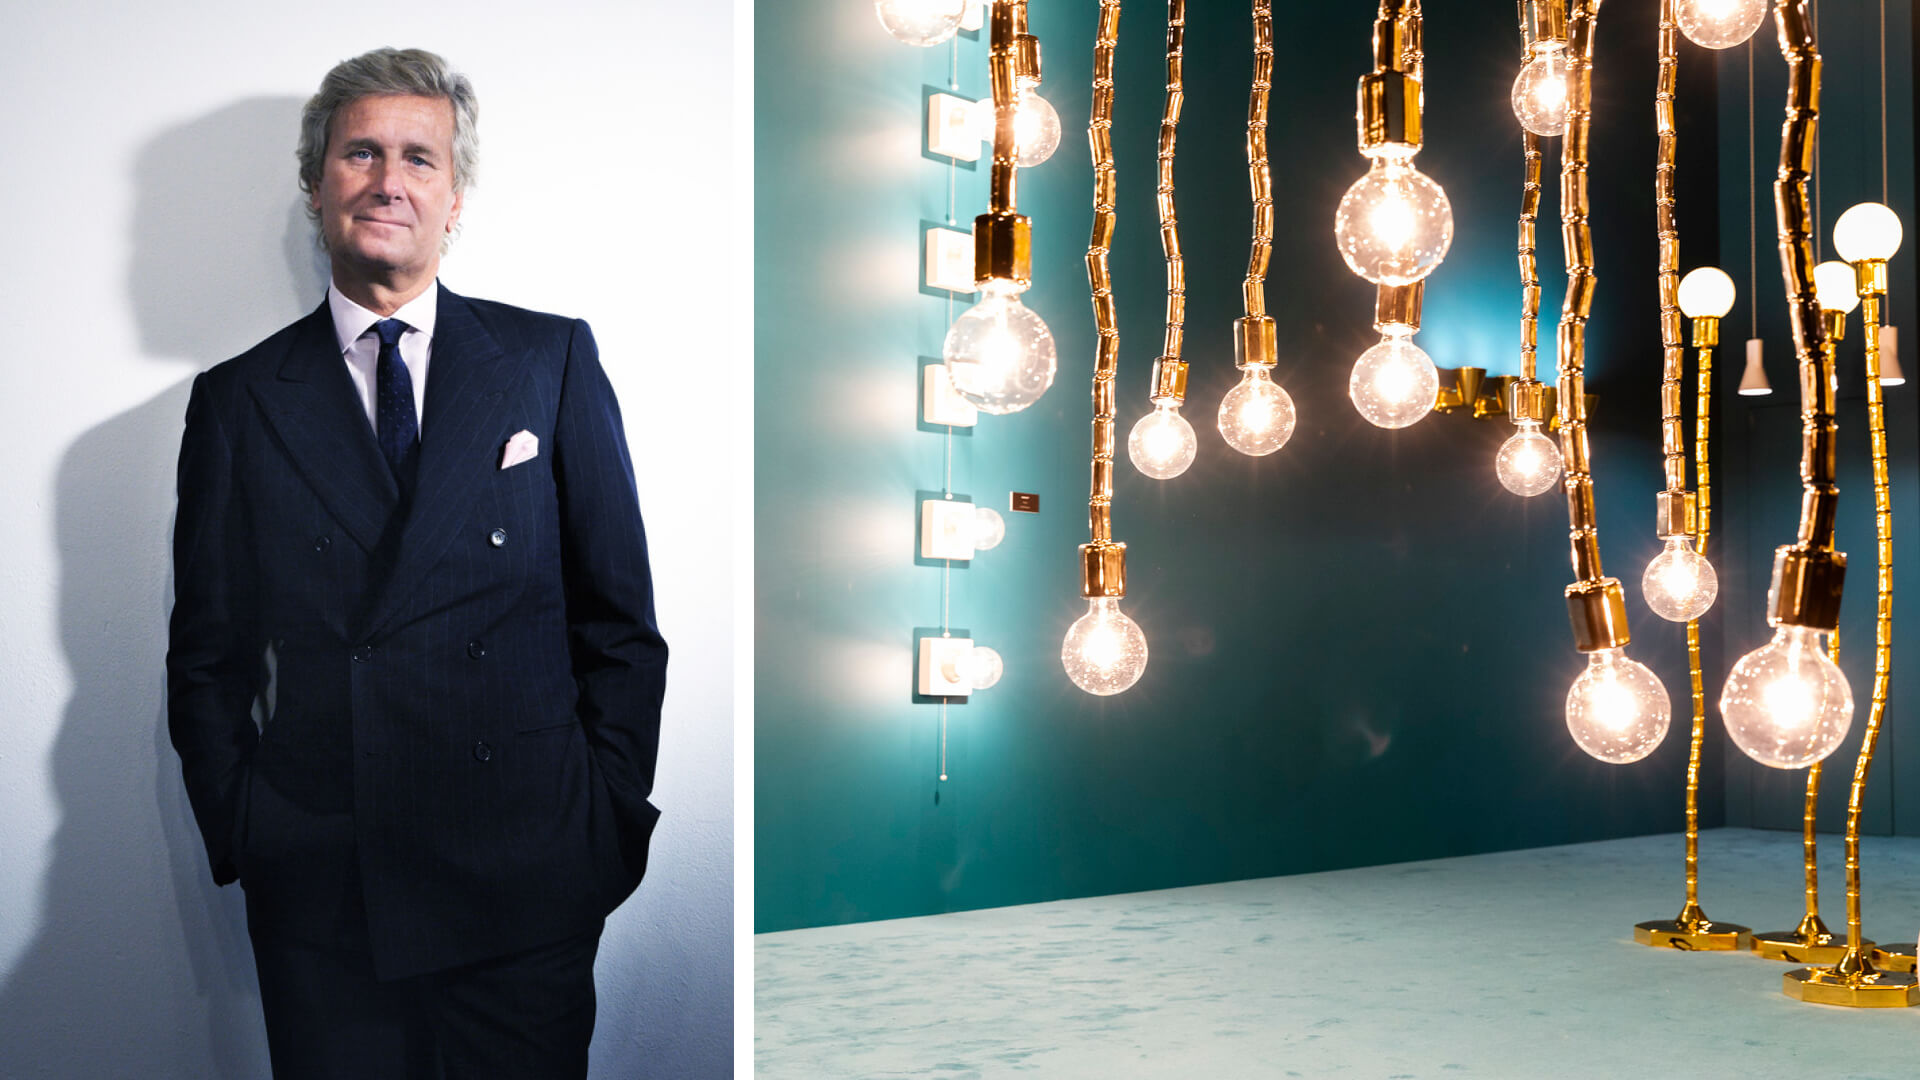 Salone del Mobile.Milano President Claudio Luti and Flaminia at Euroluce 2019 | Salone del Mobile.Milano | Milan Design Week 2021 | STIRworld